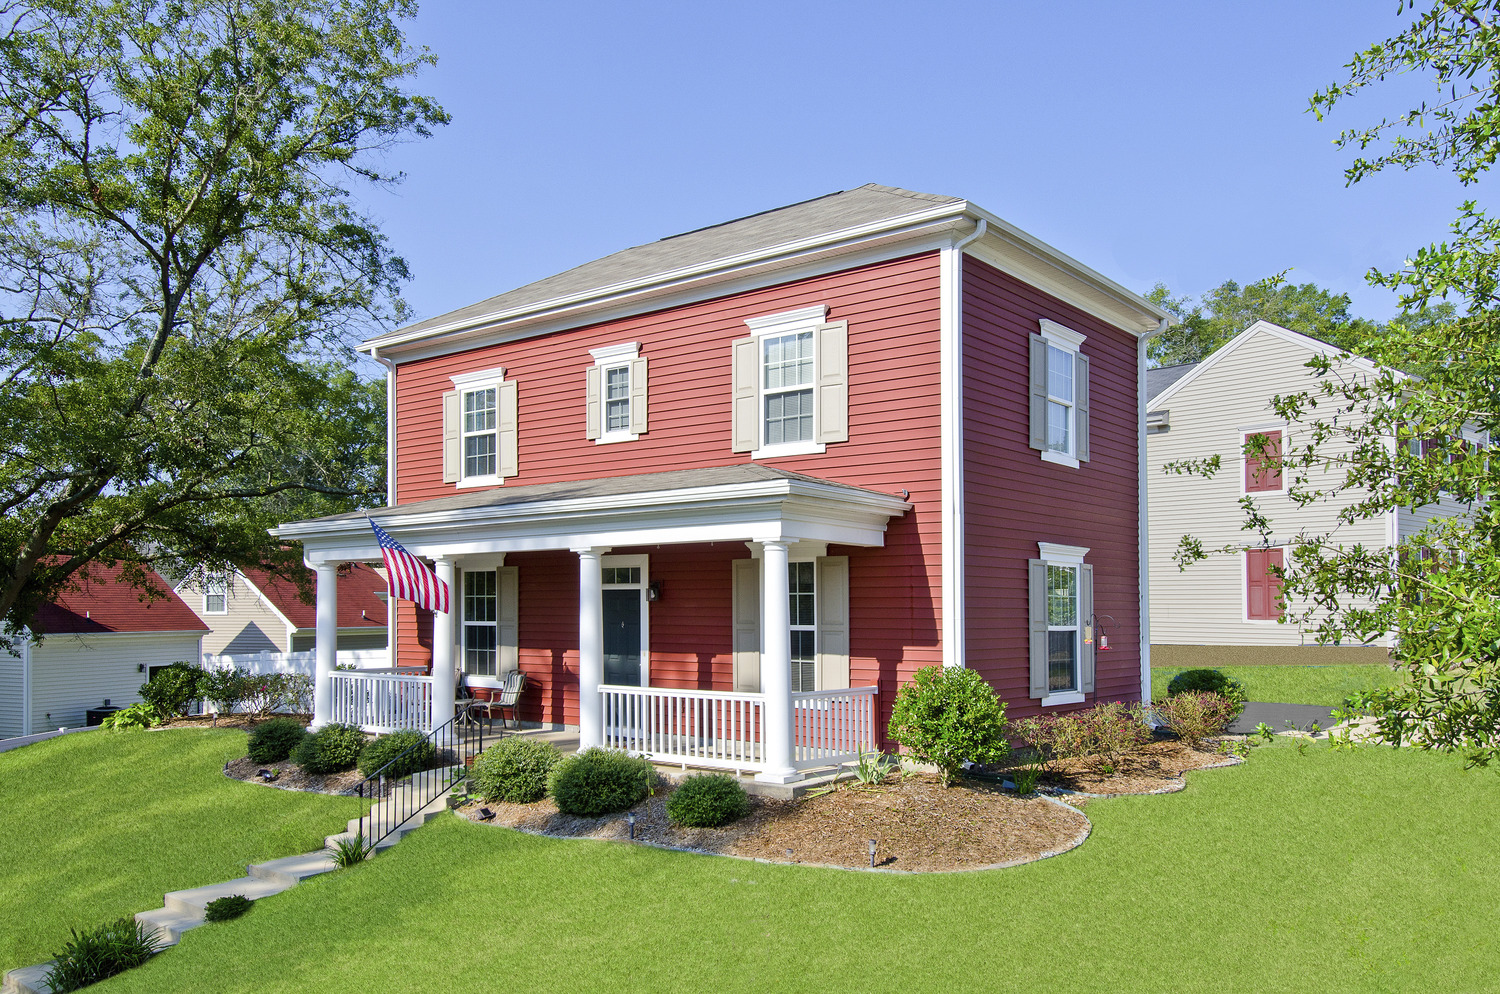 CBG builds Fort Benning Family Housing, a 3,667 Units of Housing for the Army in Fort Benning, GA - Image #4